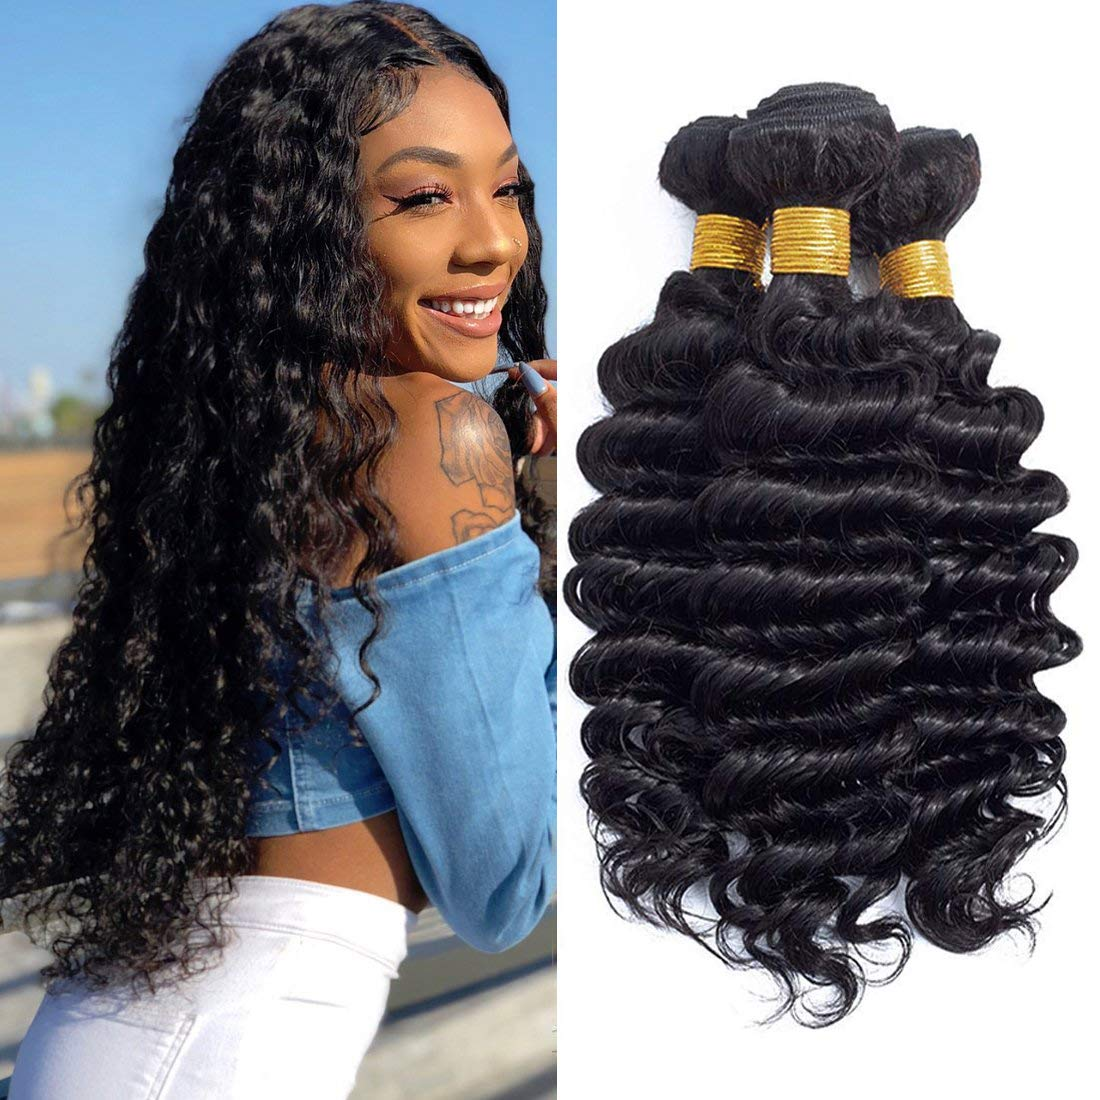 Amazon Com Newness Brazilian Deep Wave Hair 30 Inch 100 Unprocessed Virgin Human Hair Weave Bundles Deep Curly Wave Hair Extensions 1 Bundle Natural Color Beauty